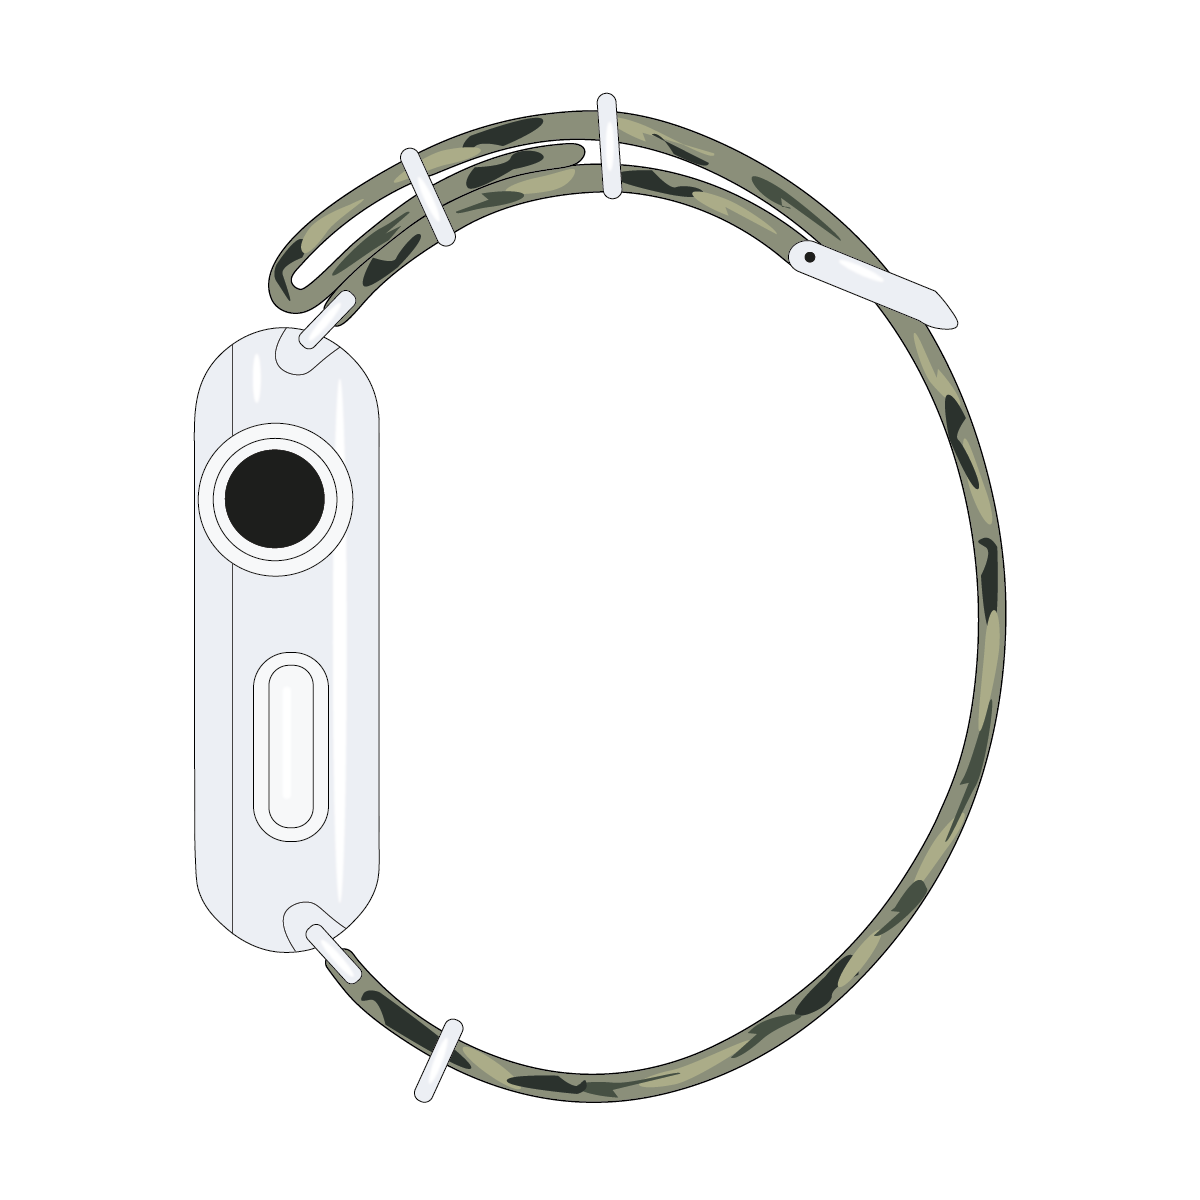 Apple Watch Armband Nato Nylon Camouflage | Roobaya – Bild 4